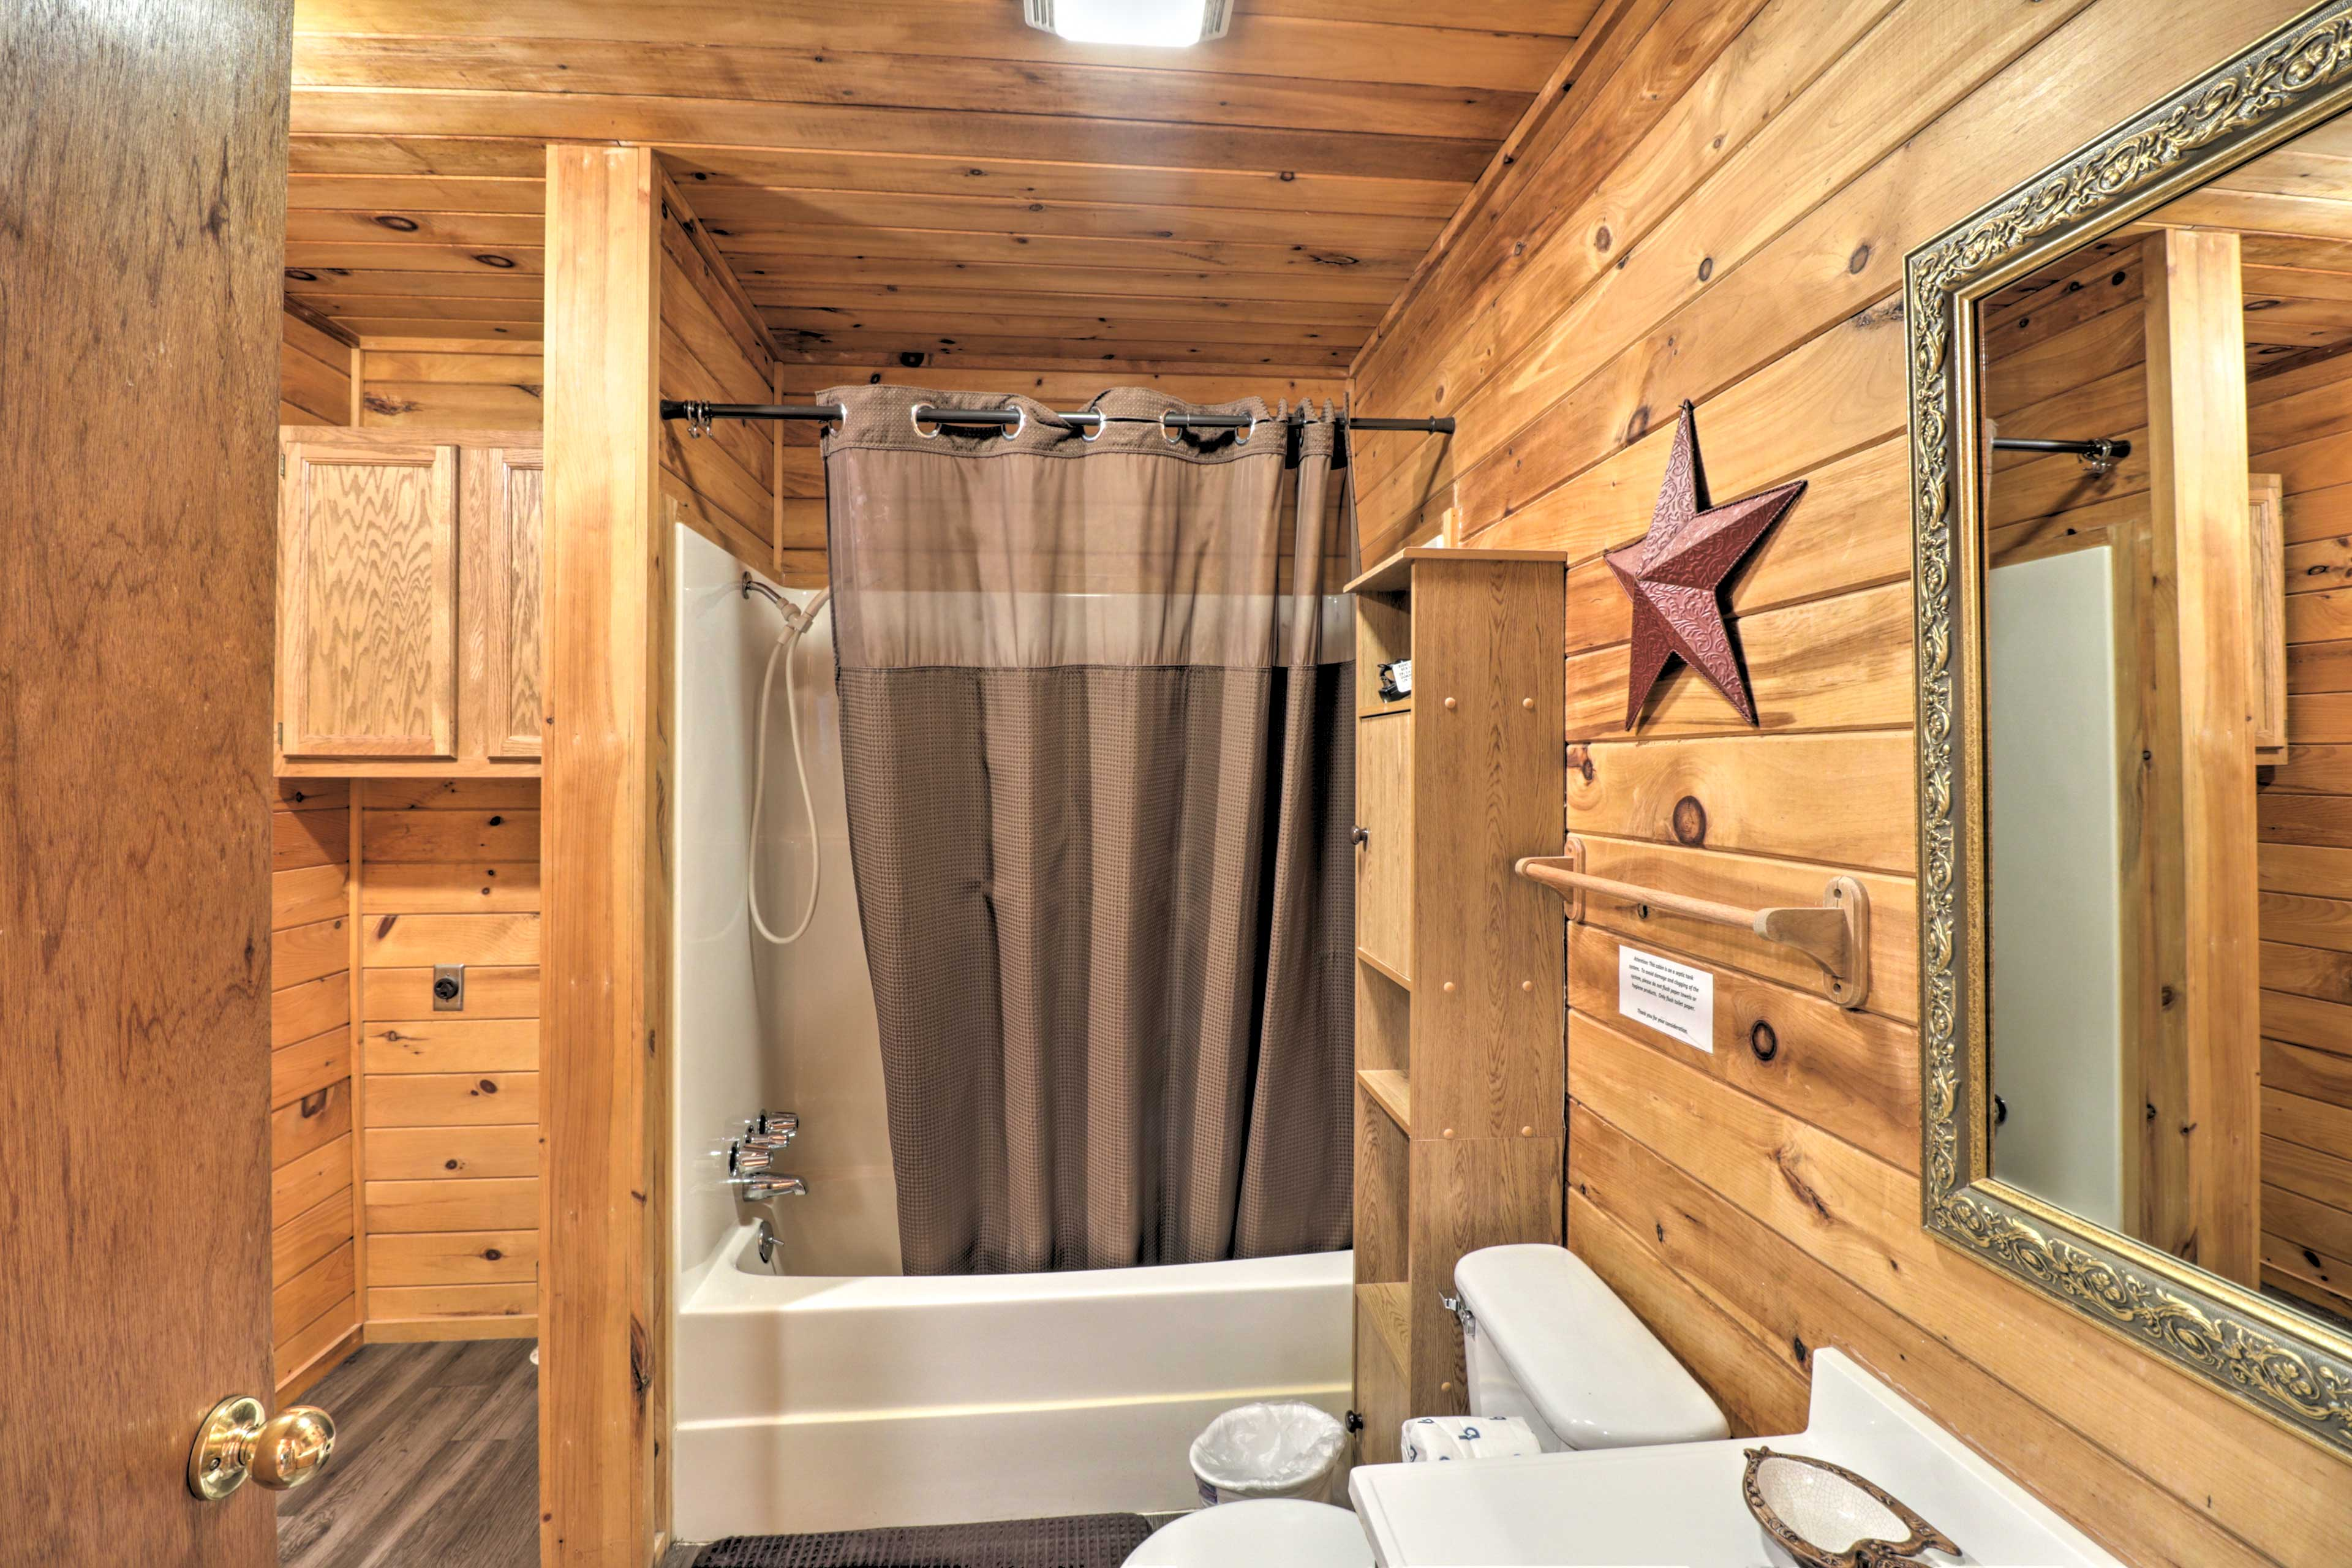 Rinse the lake water off in the shower/tub combo.